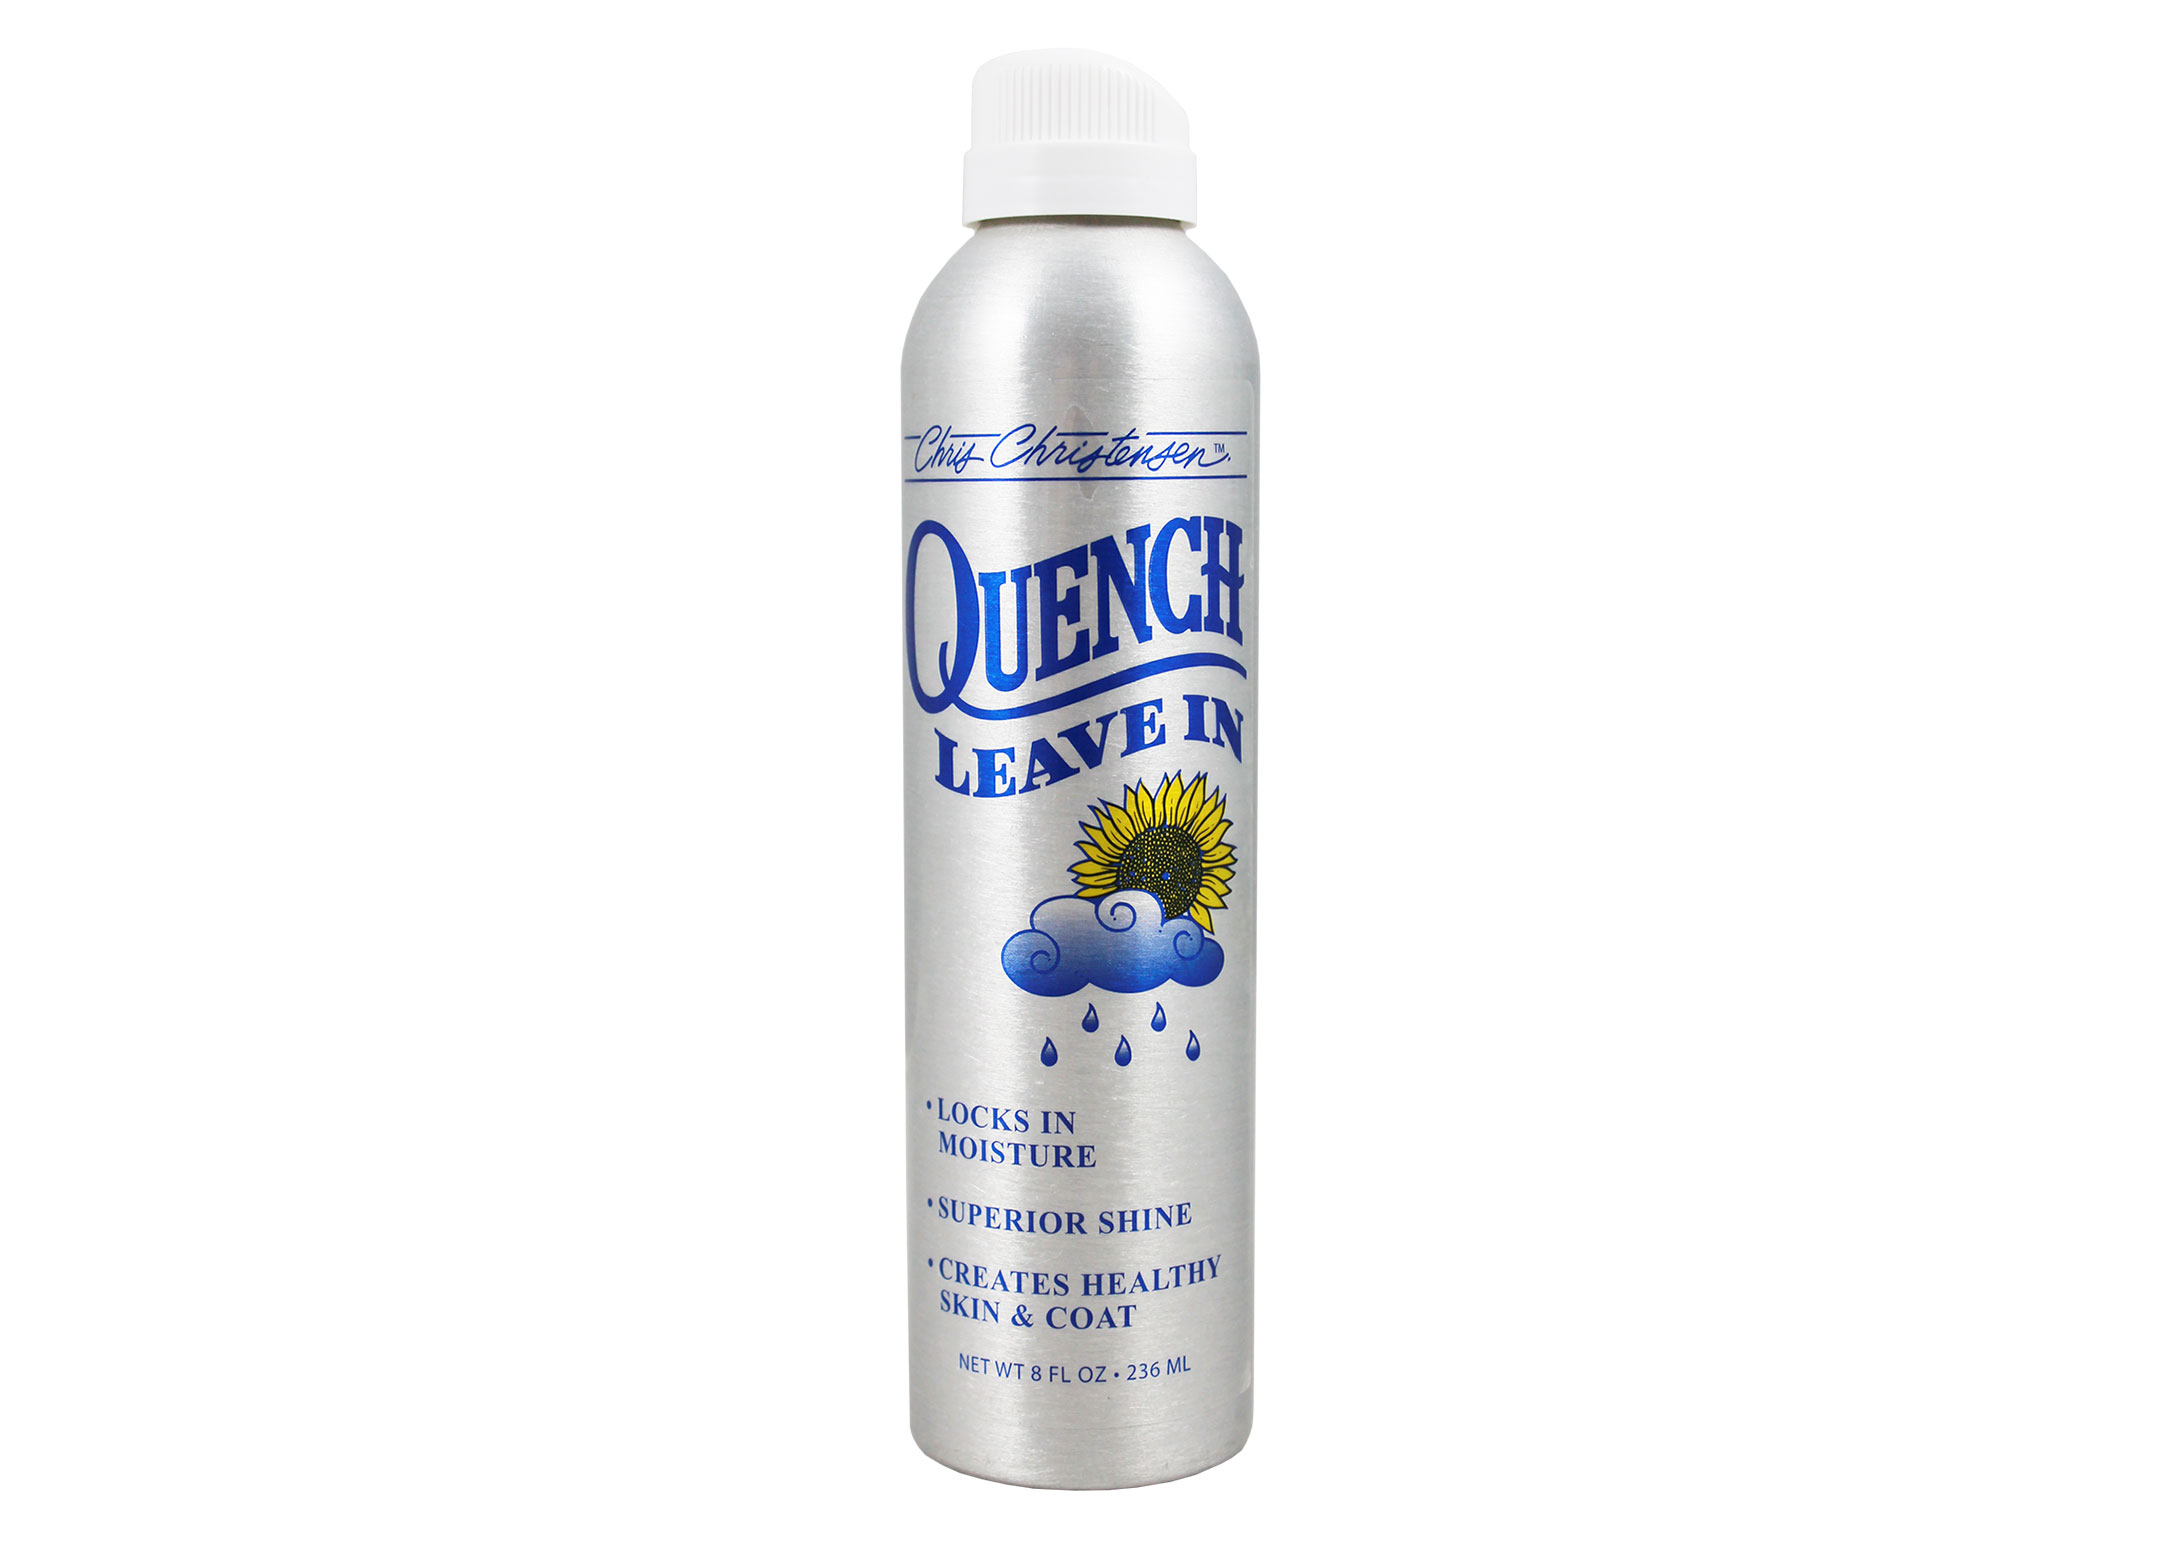 Chris Christensen Systems Quench Leave-in Conditioner